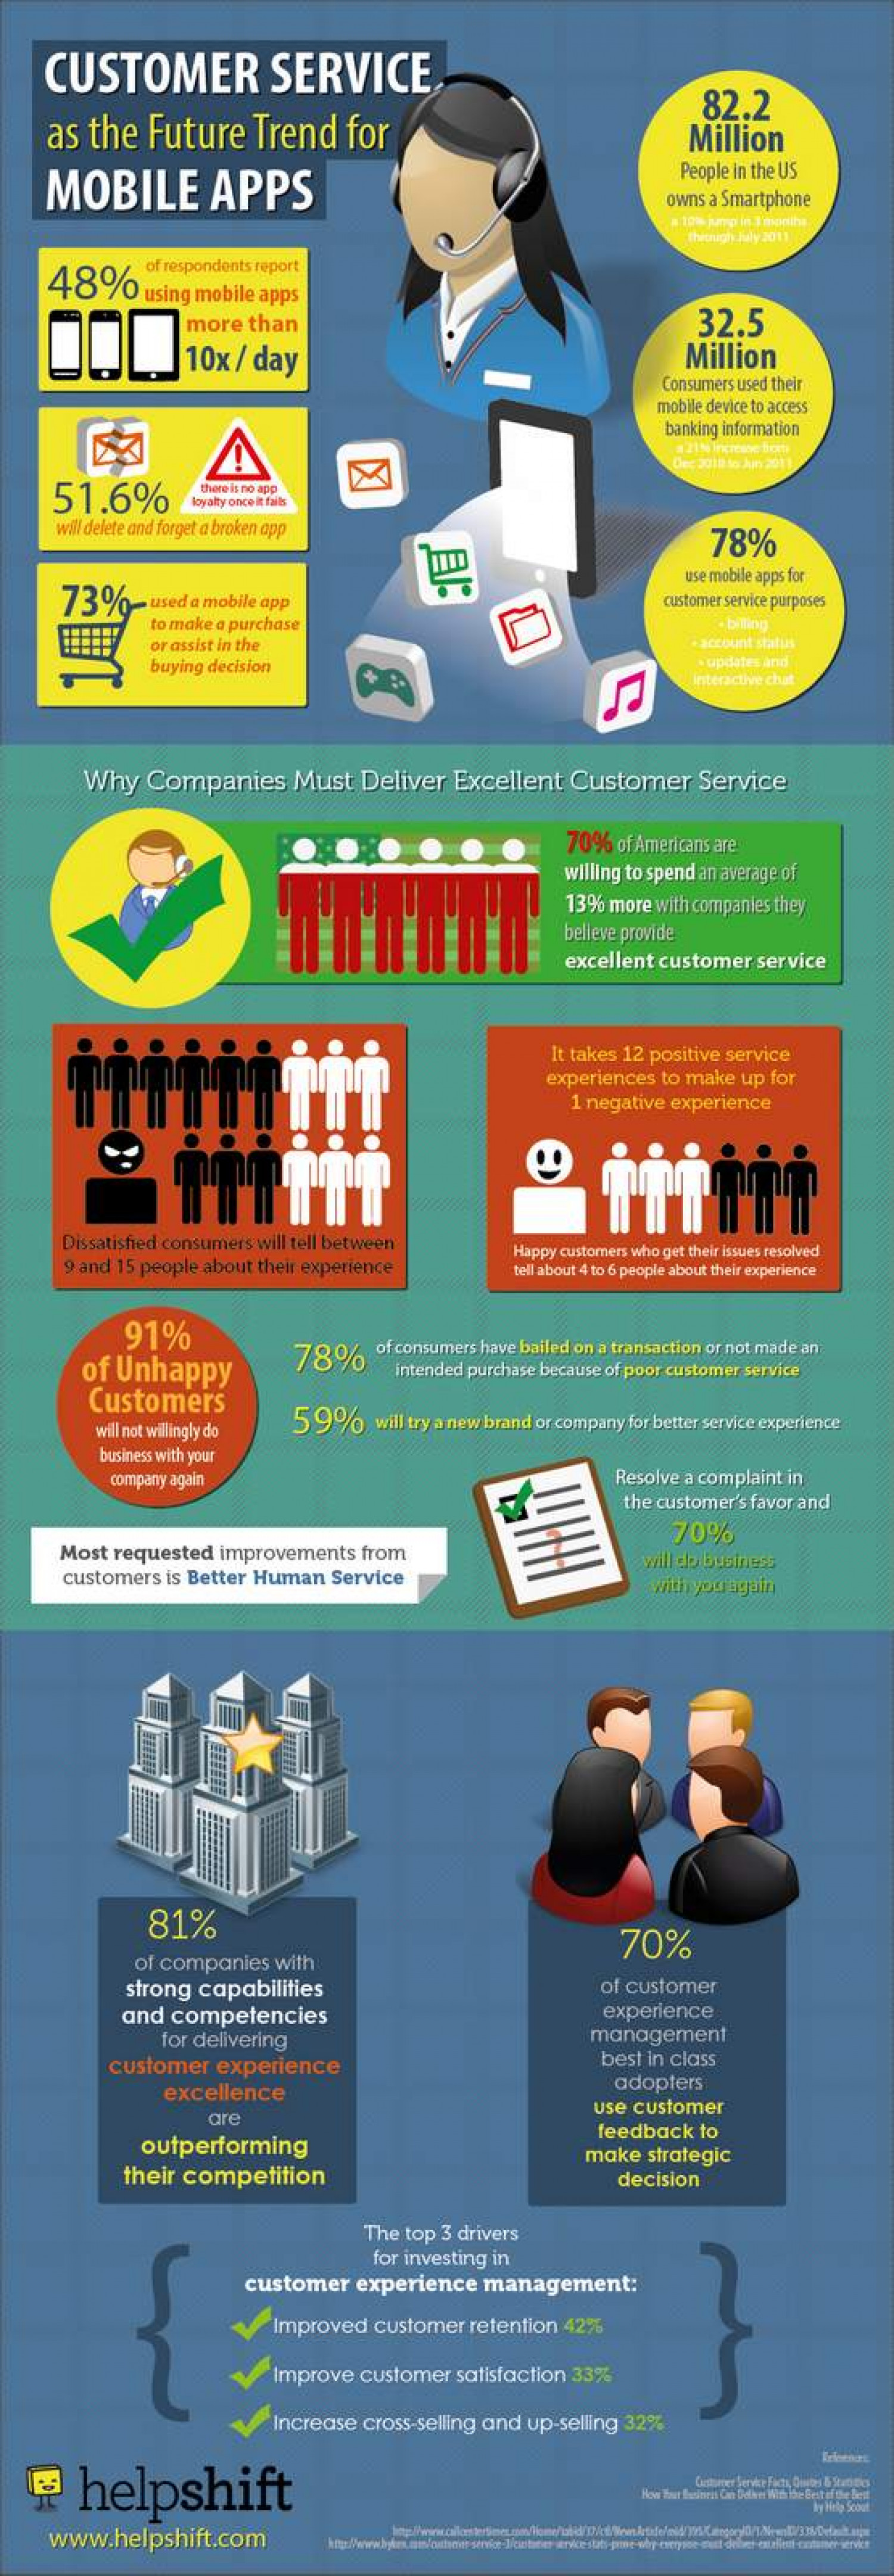 Customer Service as the Future Trend for Mobile Apps Infographic